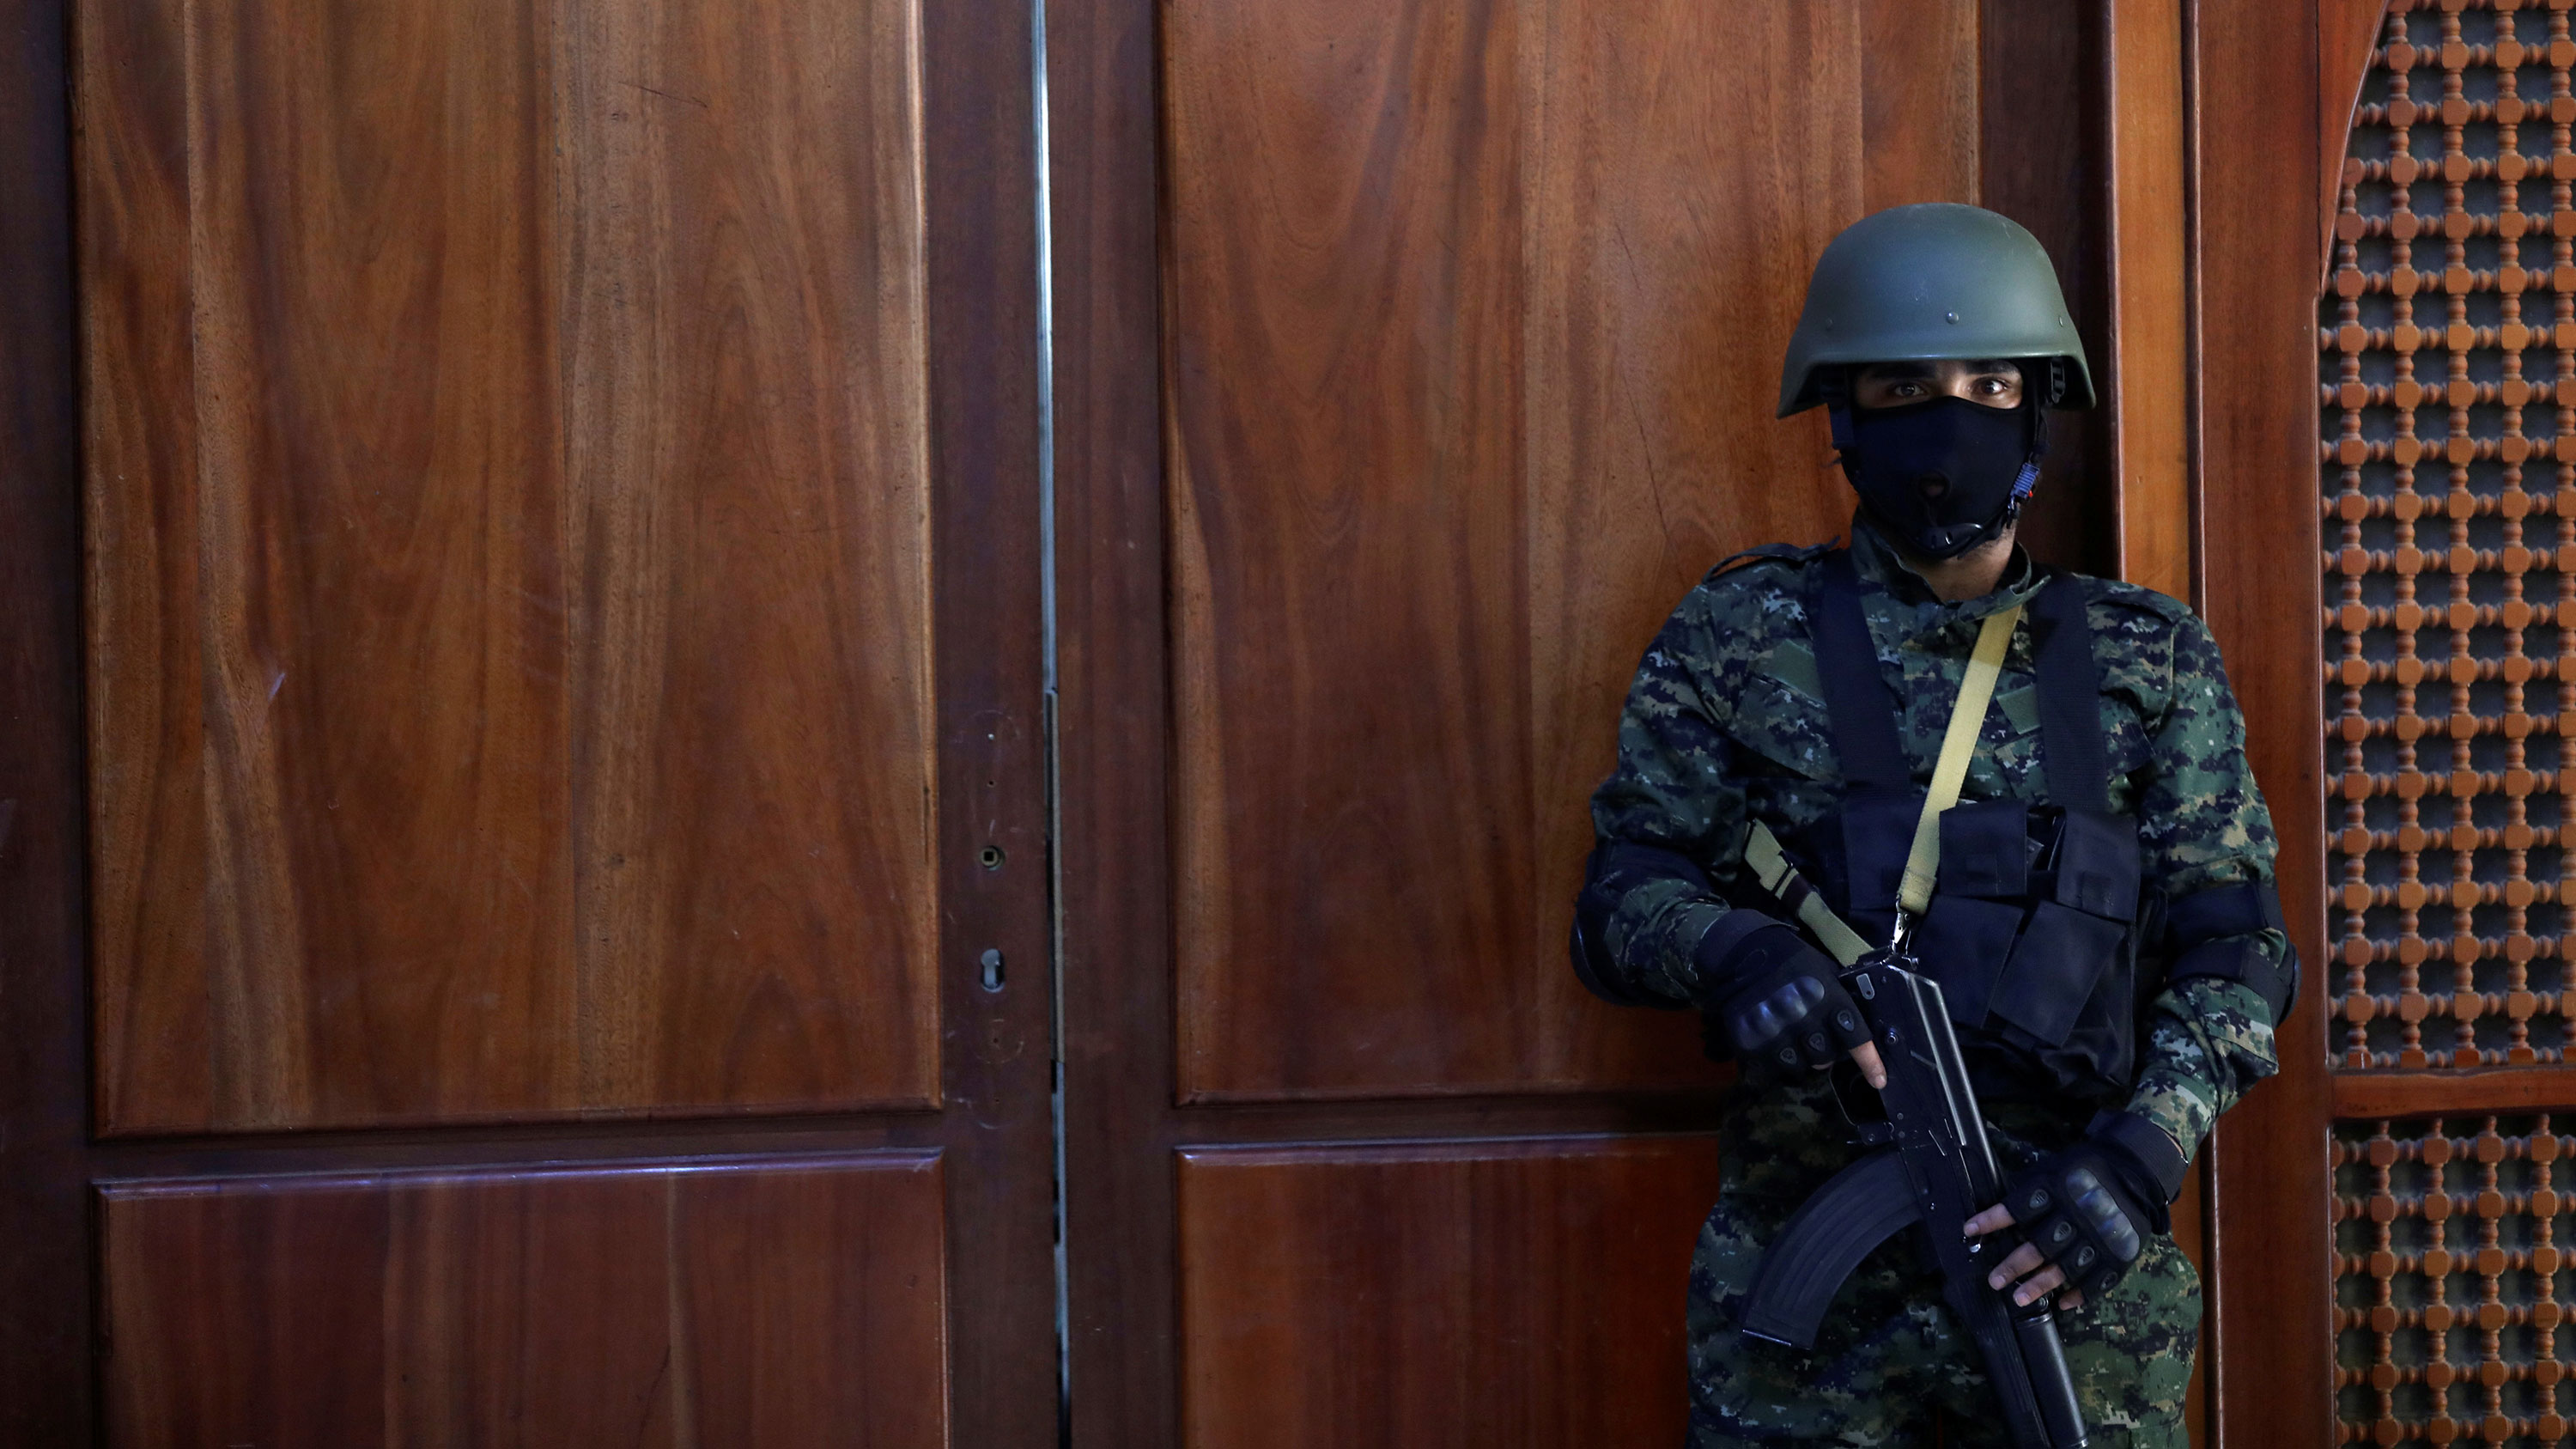 The picture shows a guard with a machine gun standing in front of a wooden door. His mask is black, the door is red.